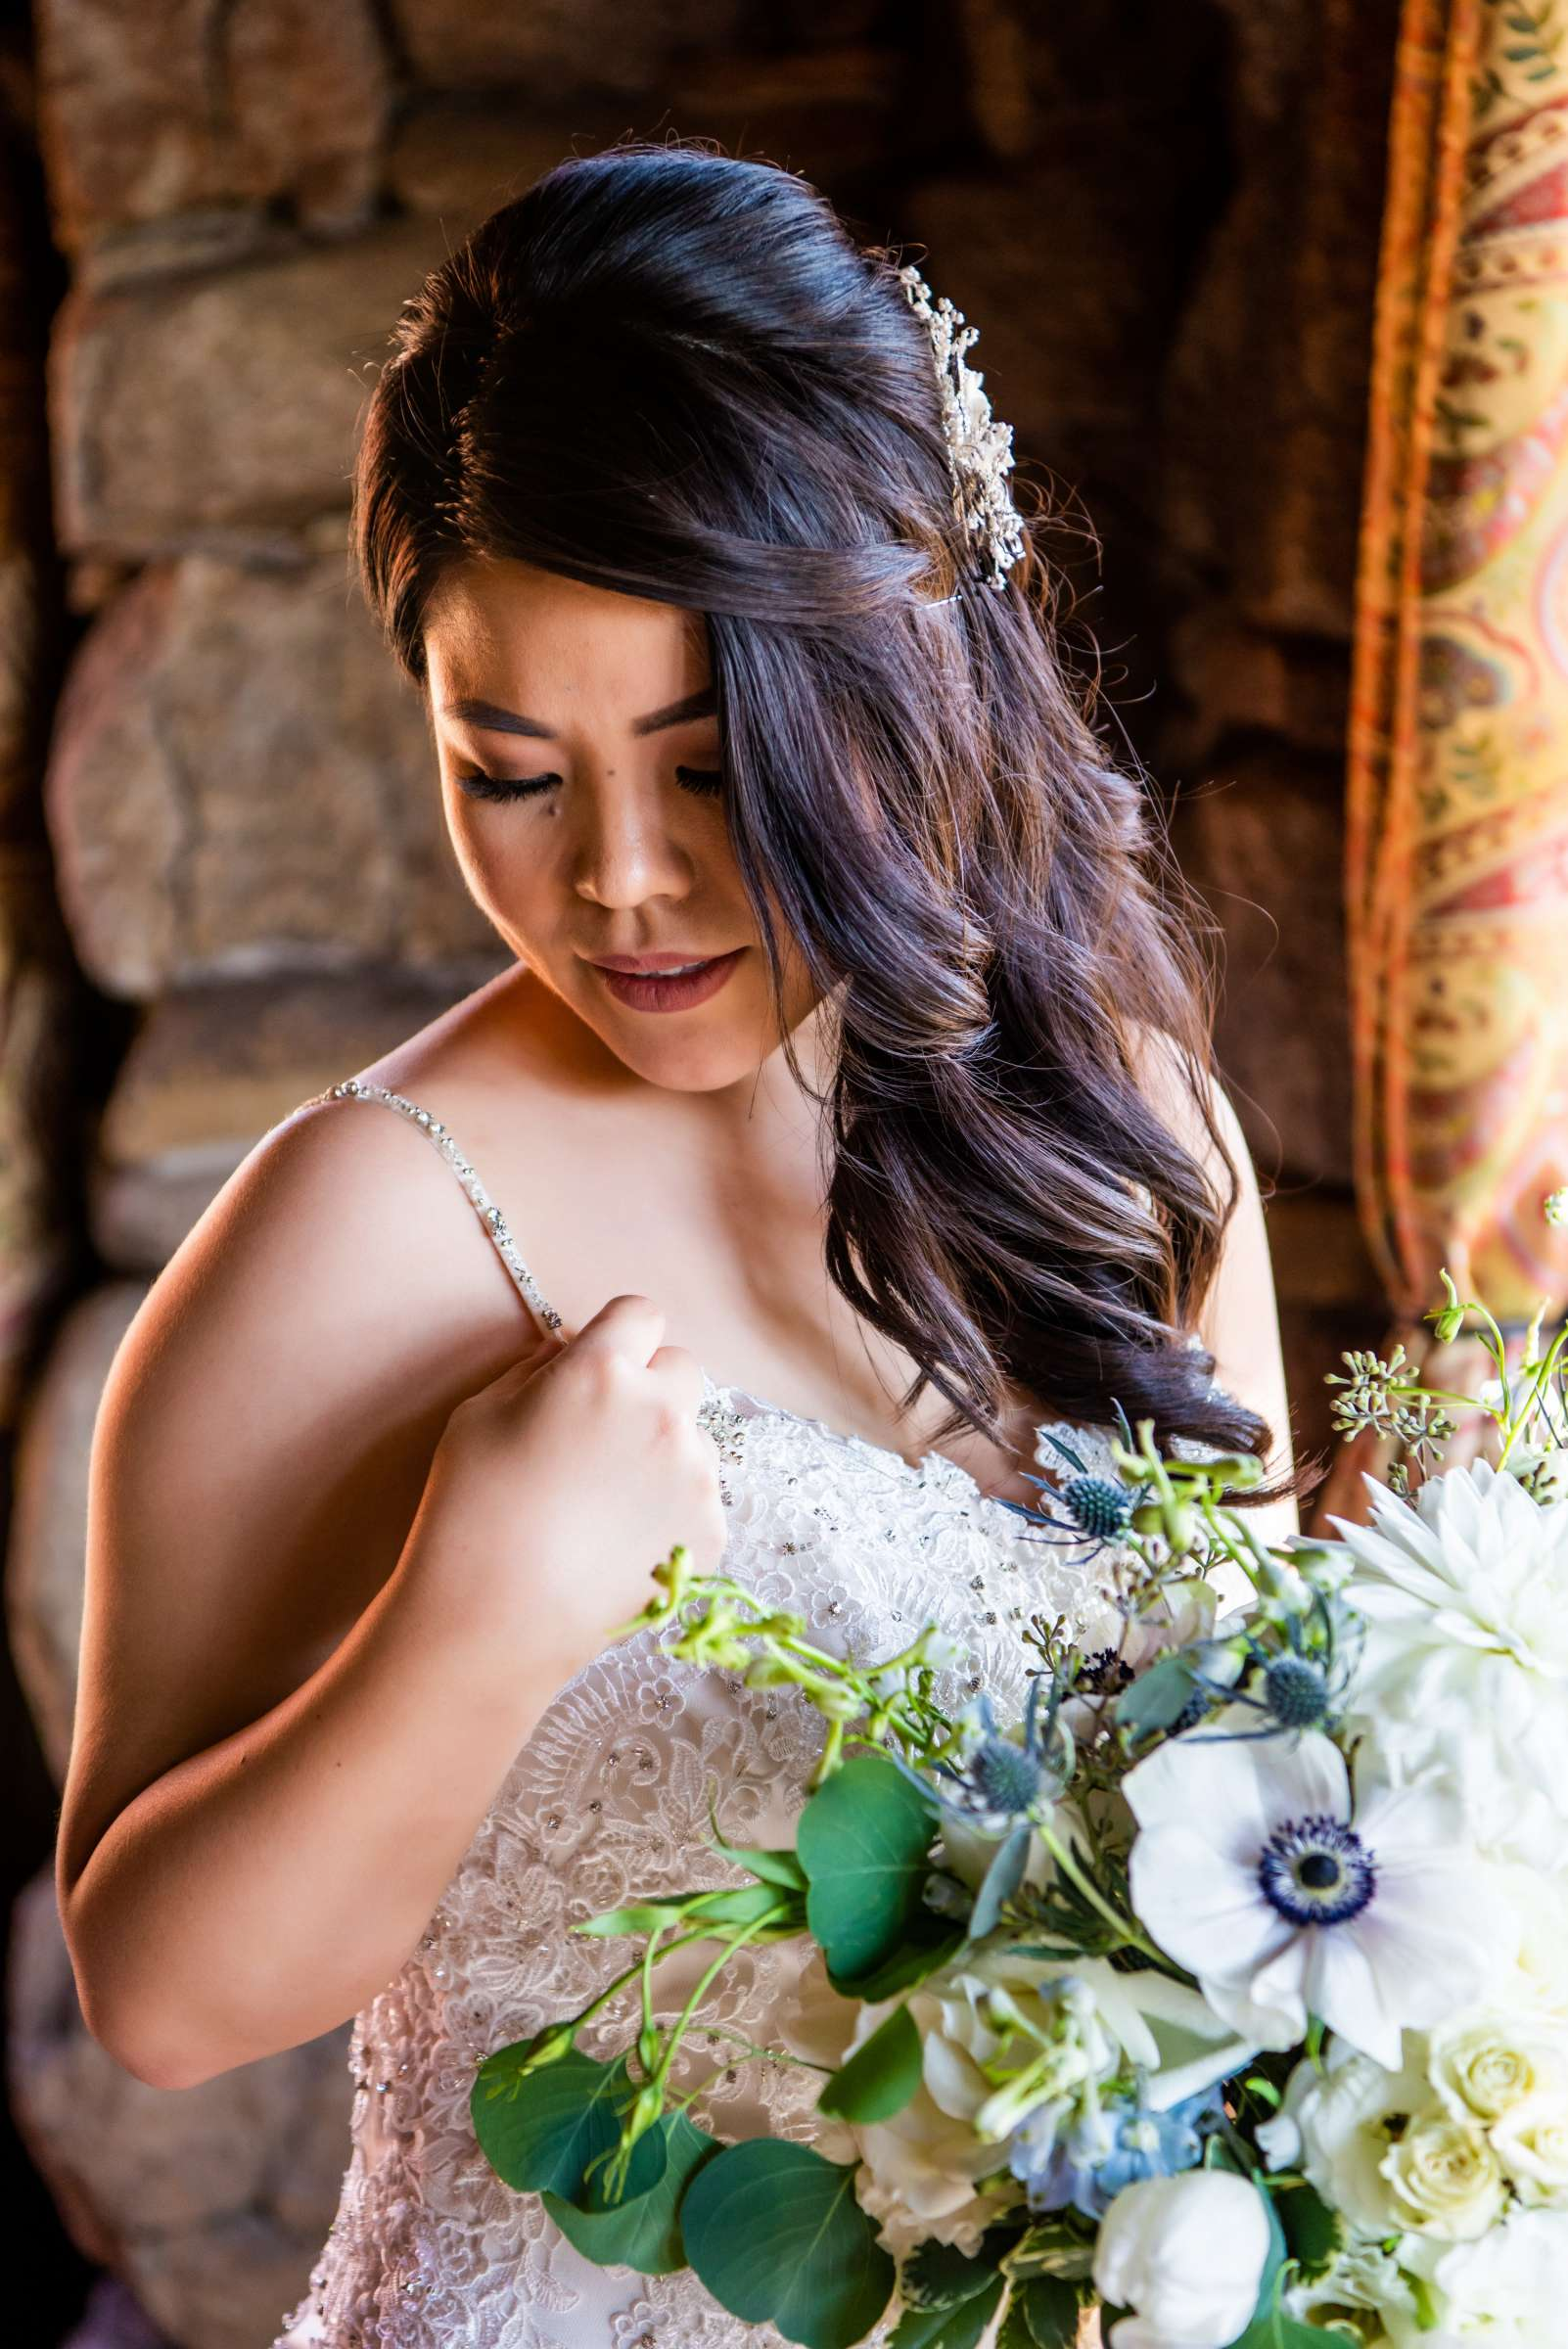 Mt Woodson Castle Wedding coordinated by I Do Weddings, Aya and Jared Wedding Photo #486899 by True Photography